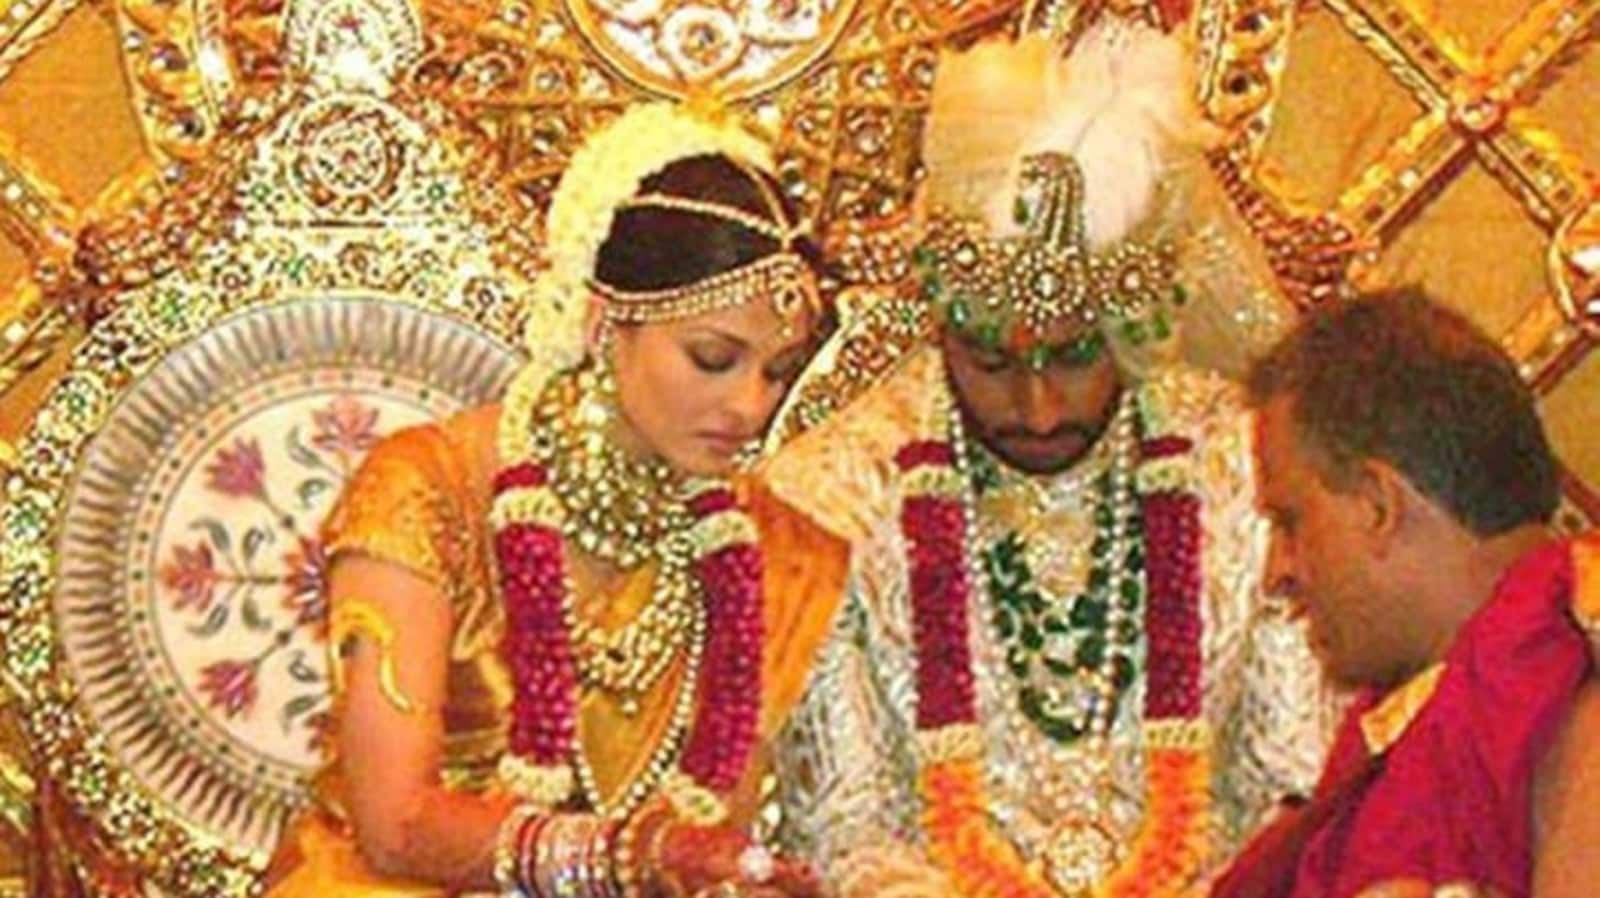 Abhishek Bachchan reacts as fans share morphed photo from his wedding to Aishwarya Rai |  bollywood